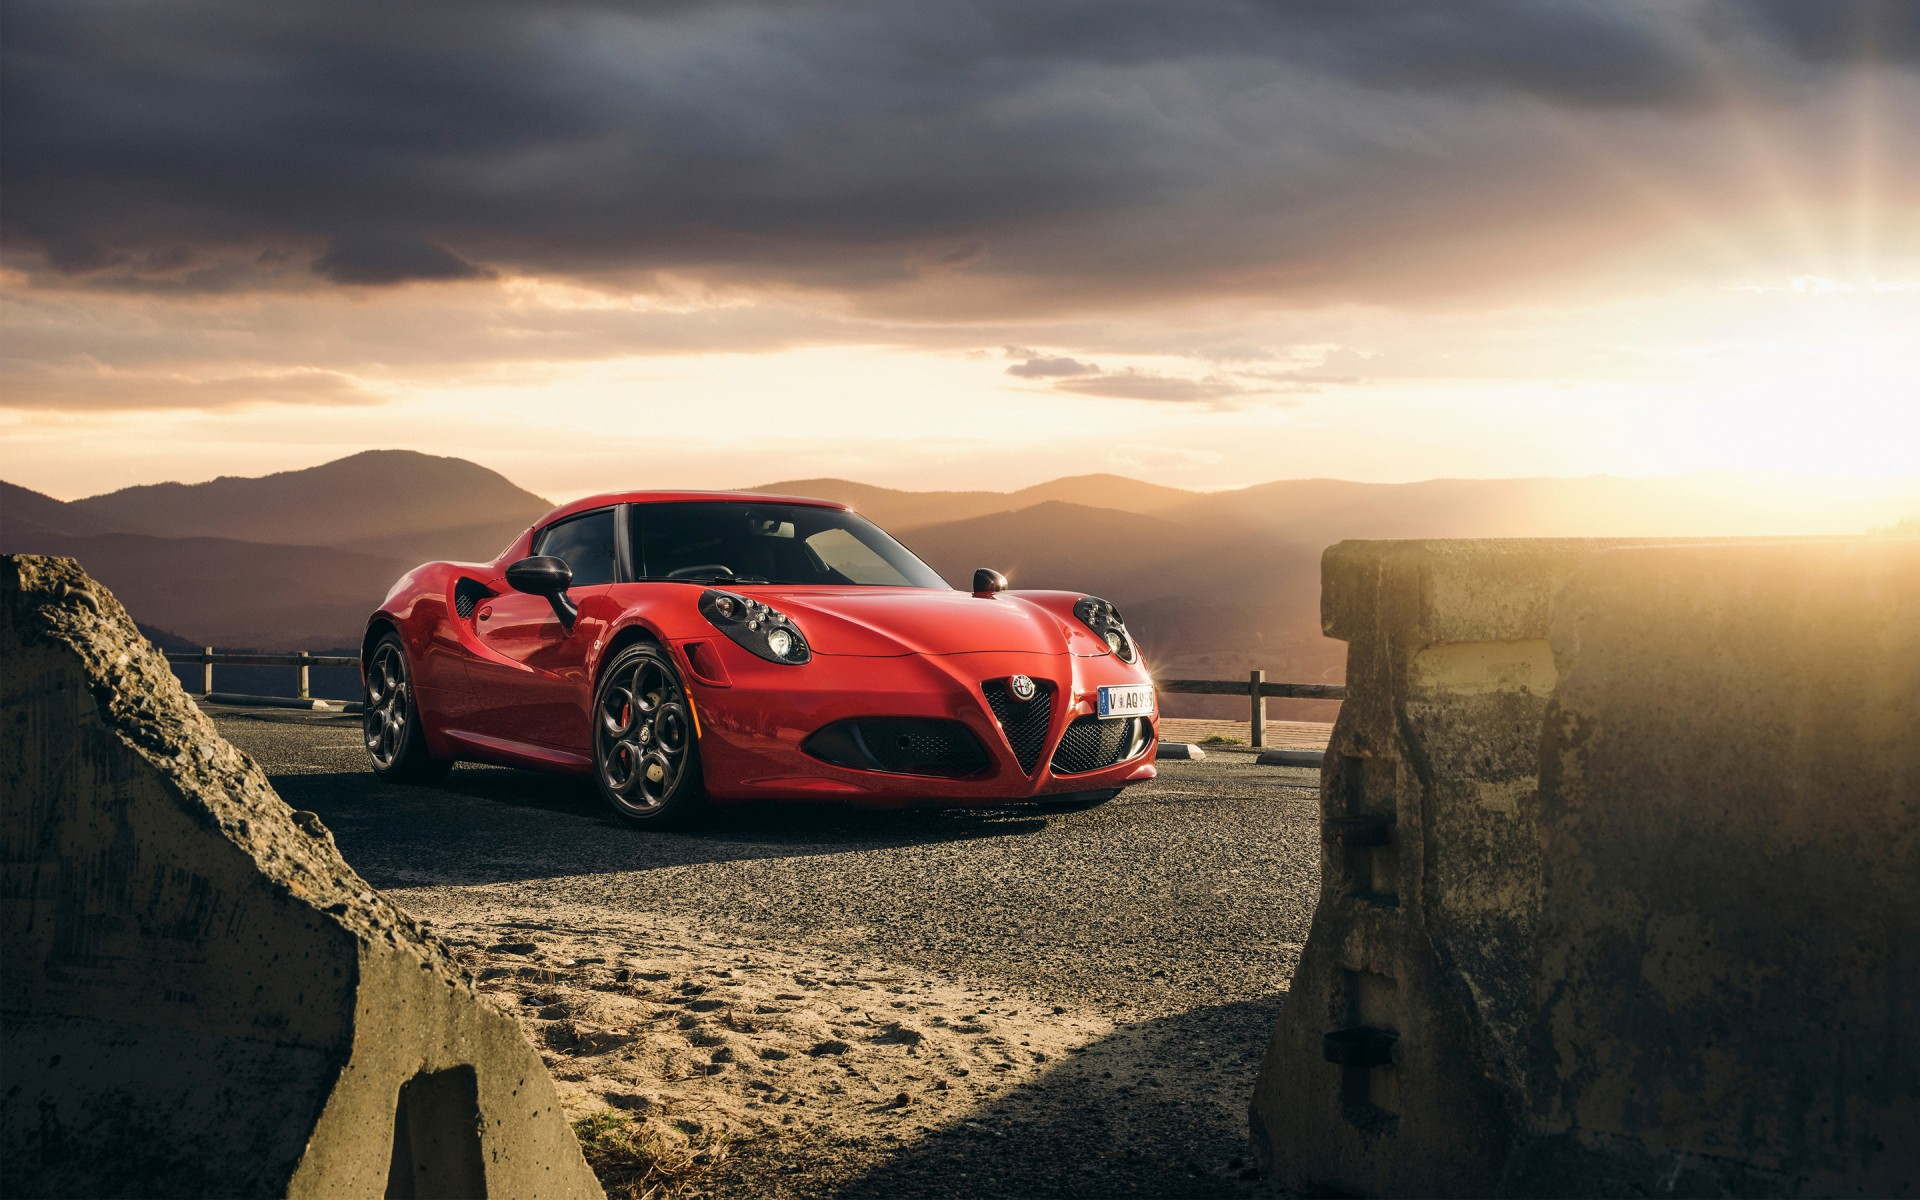 Car Wallpapers Computer Desktop 2015 Alfa Romeo 4c Launch Edition Wallpaper Hd Car